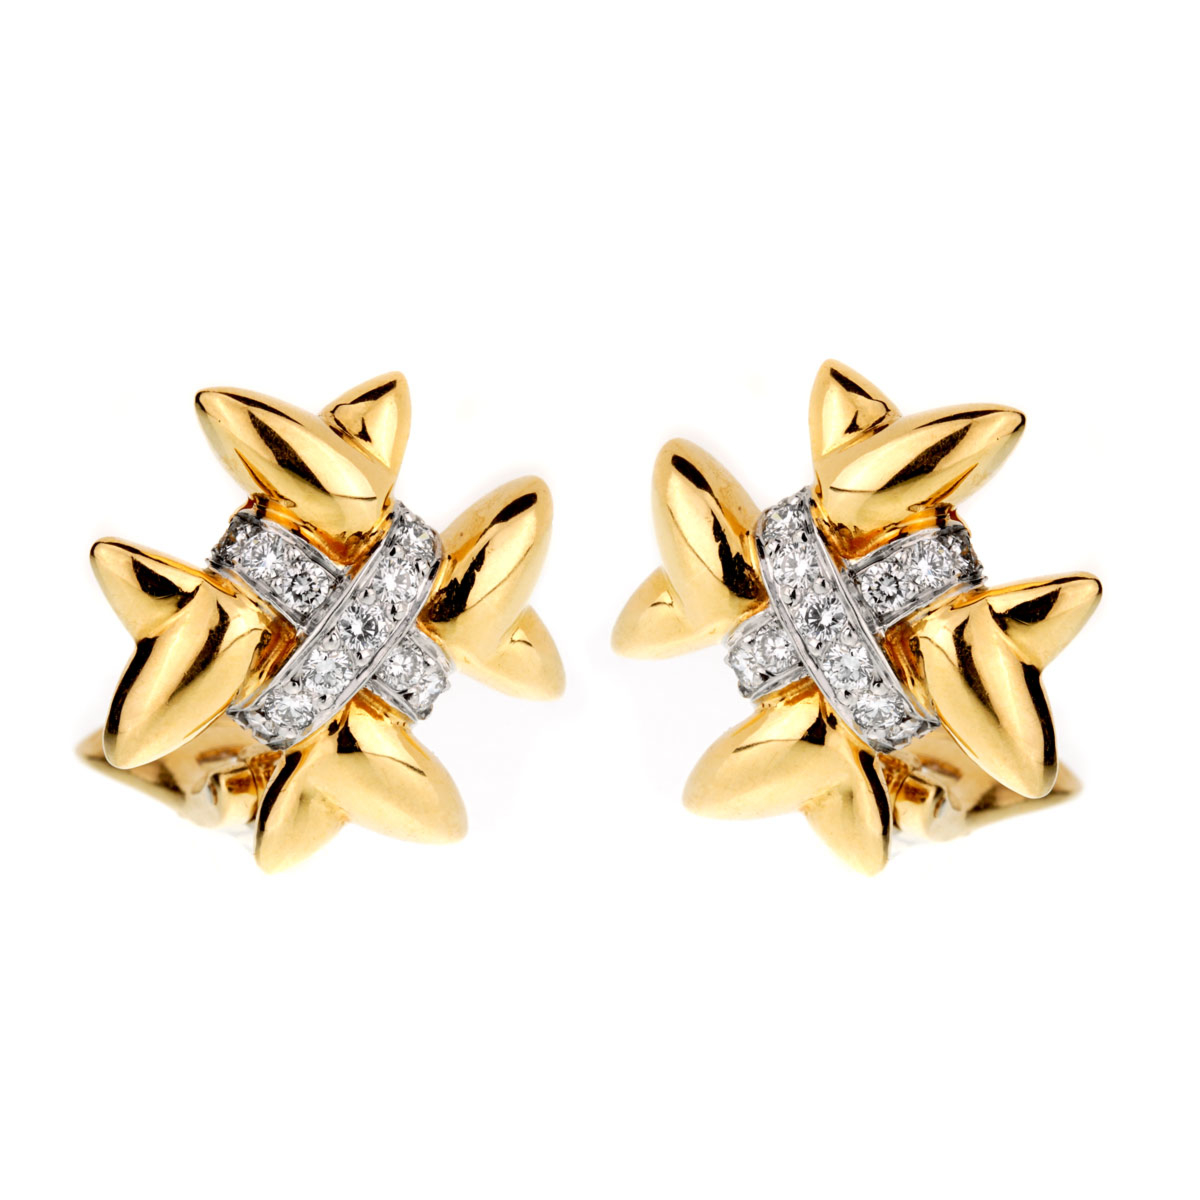 Tiffany & Co 18k Gold Diamond Cross Earrings - Tiffany and Co Jewelry